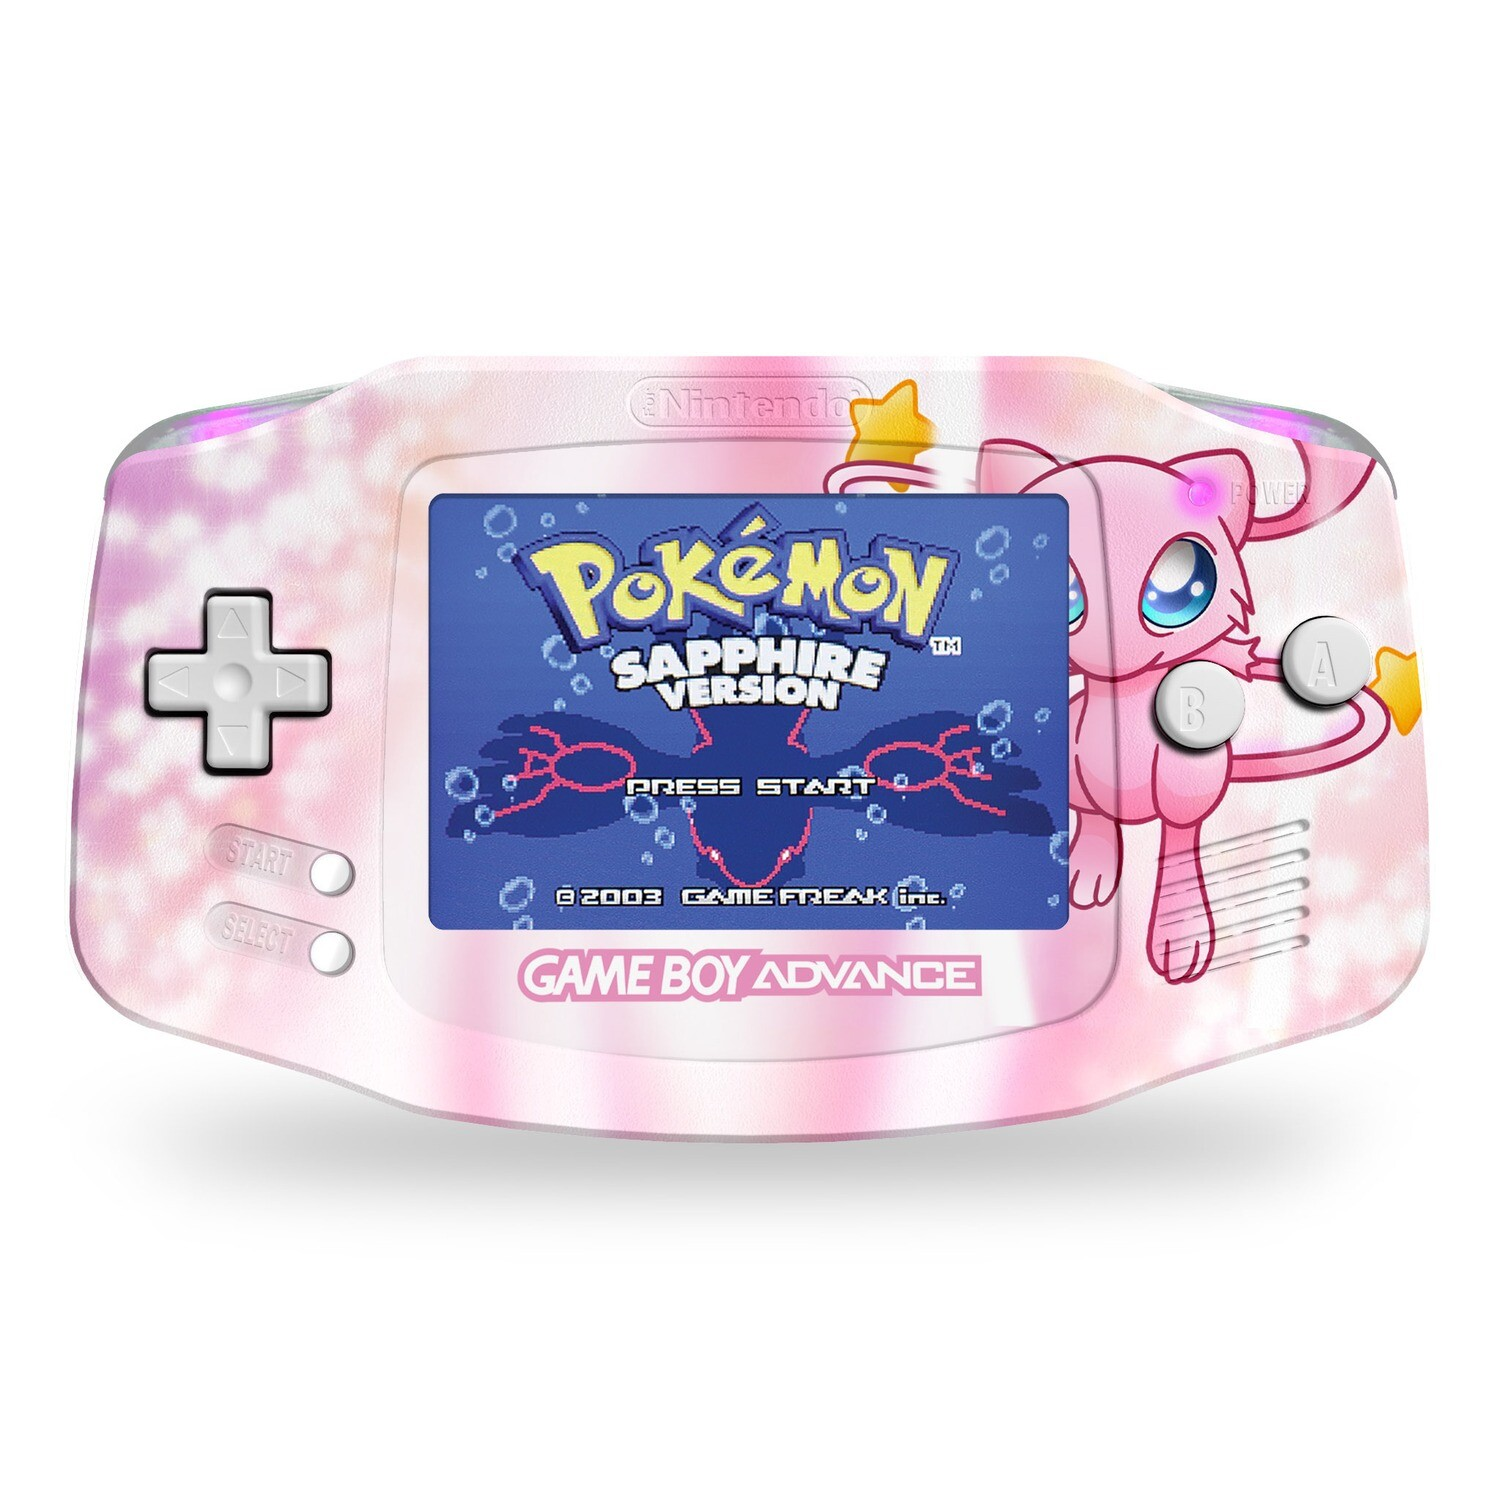 Game Boy Advance: Prestige Edition (UV Mew)